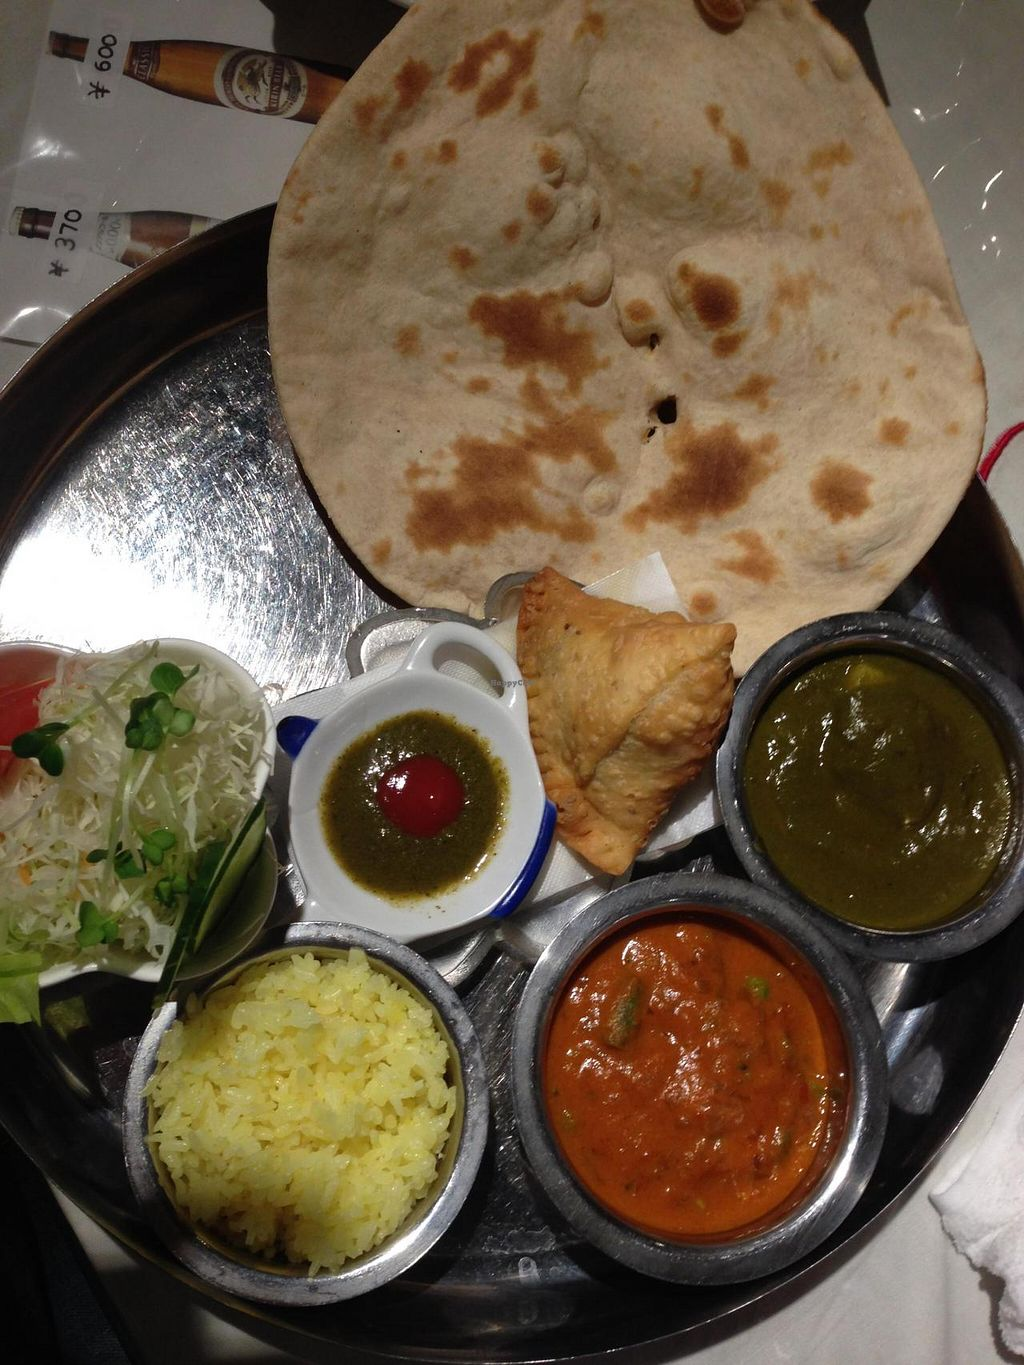 """Photo of Sri Lanka Kagoshima  by <a href=""""/members/profile/lovingkarma"""">lovingkarma</a> <br/>This is the vegetable dinner set. They were happy to make this vegan nan for me. :) <br/> July 21, 2014  - <a href='/contact/abuse/image/37844/74661'>Report</a>"""